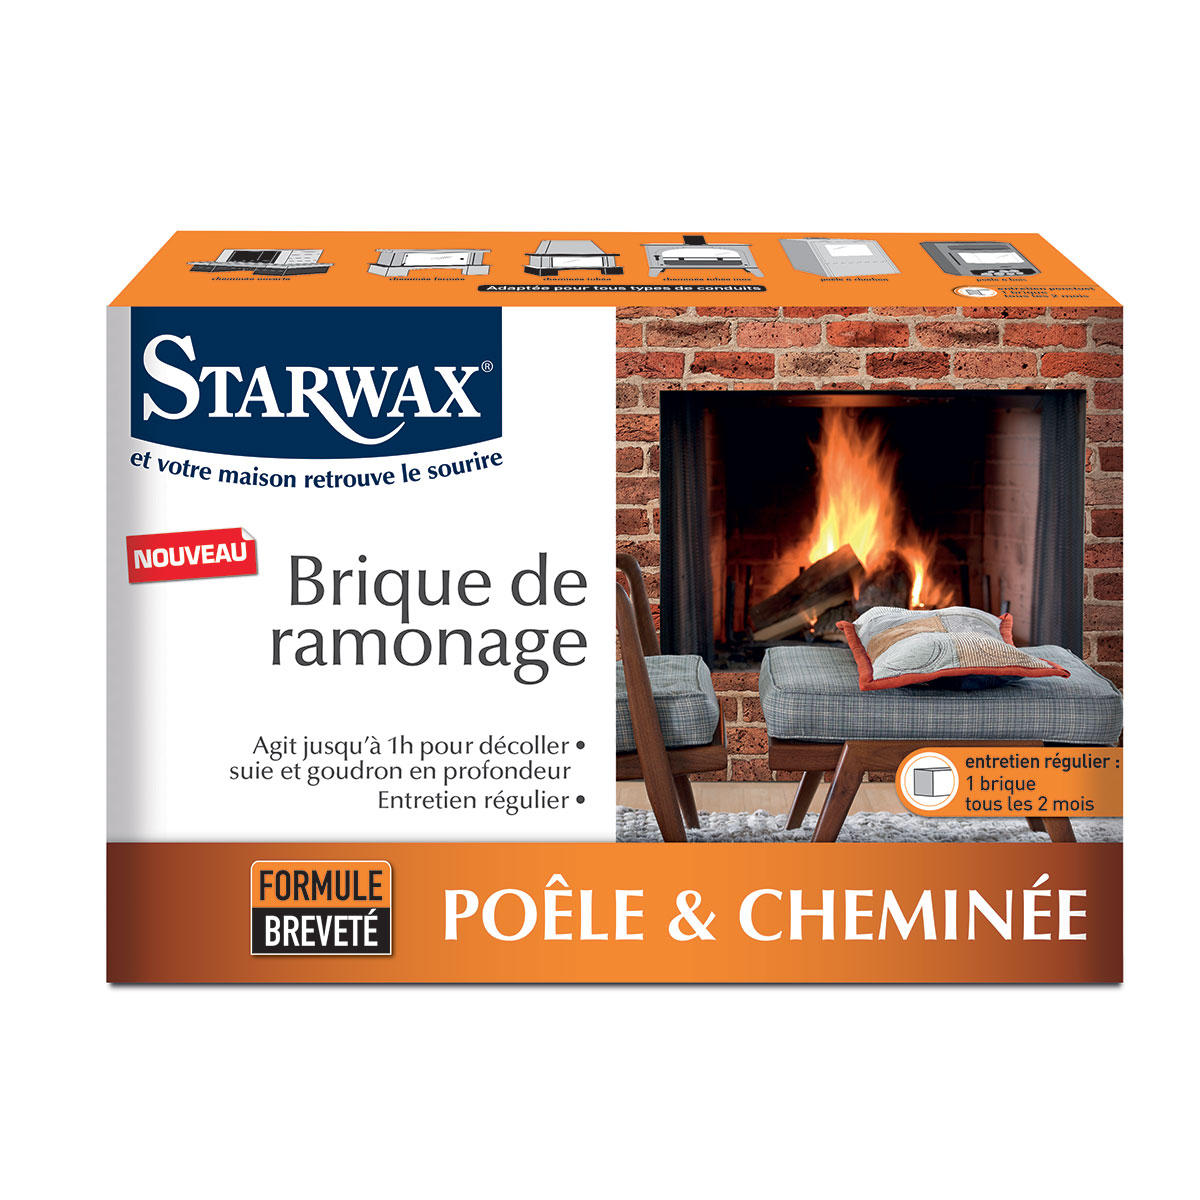 Brique de ramonage - Starwax